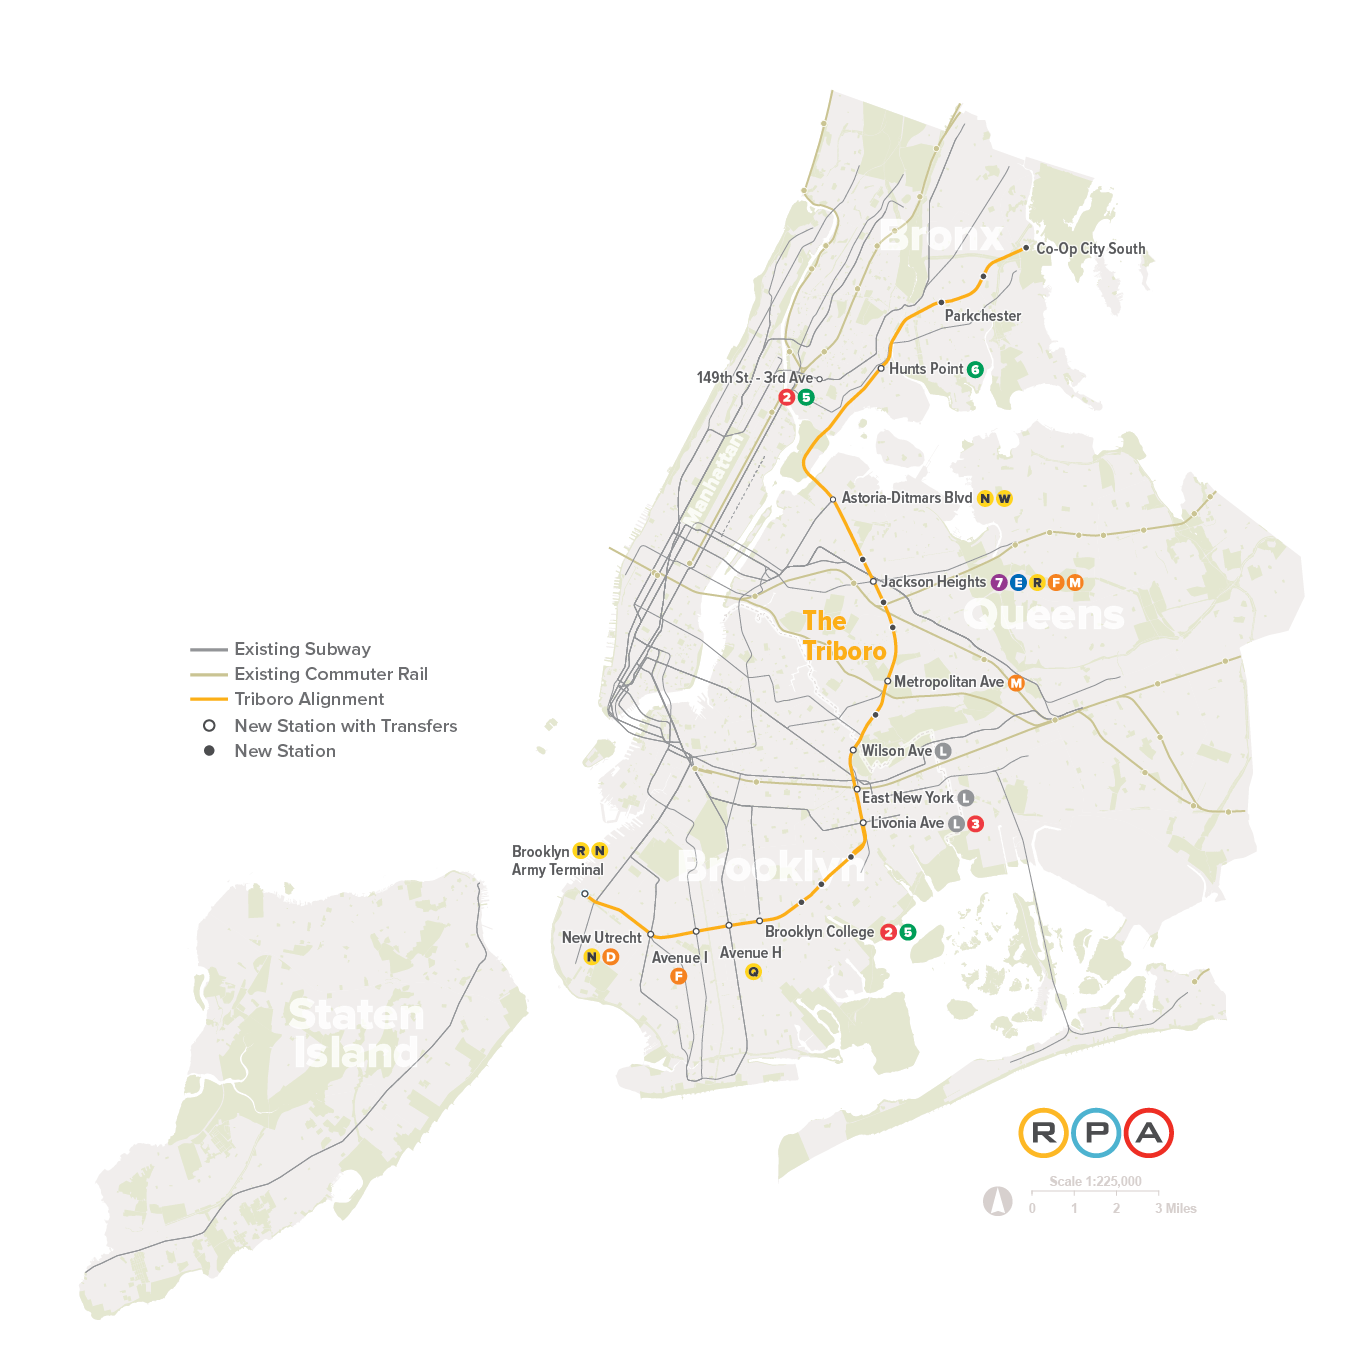 A map of the Triboro's proposed route. Courtesy of Regional Plan Association